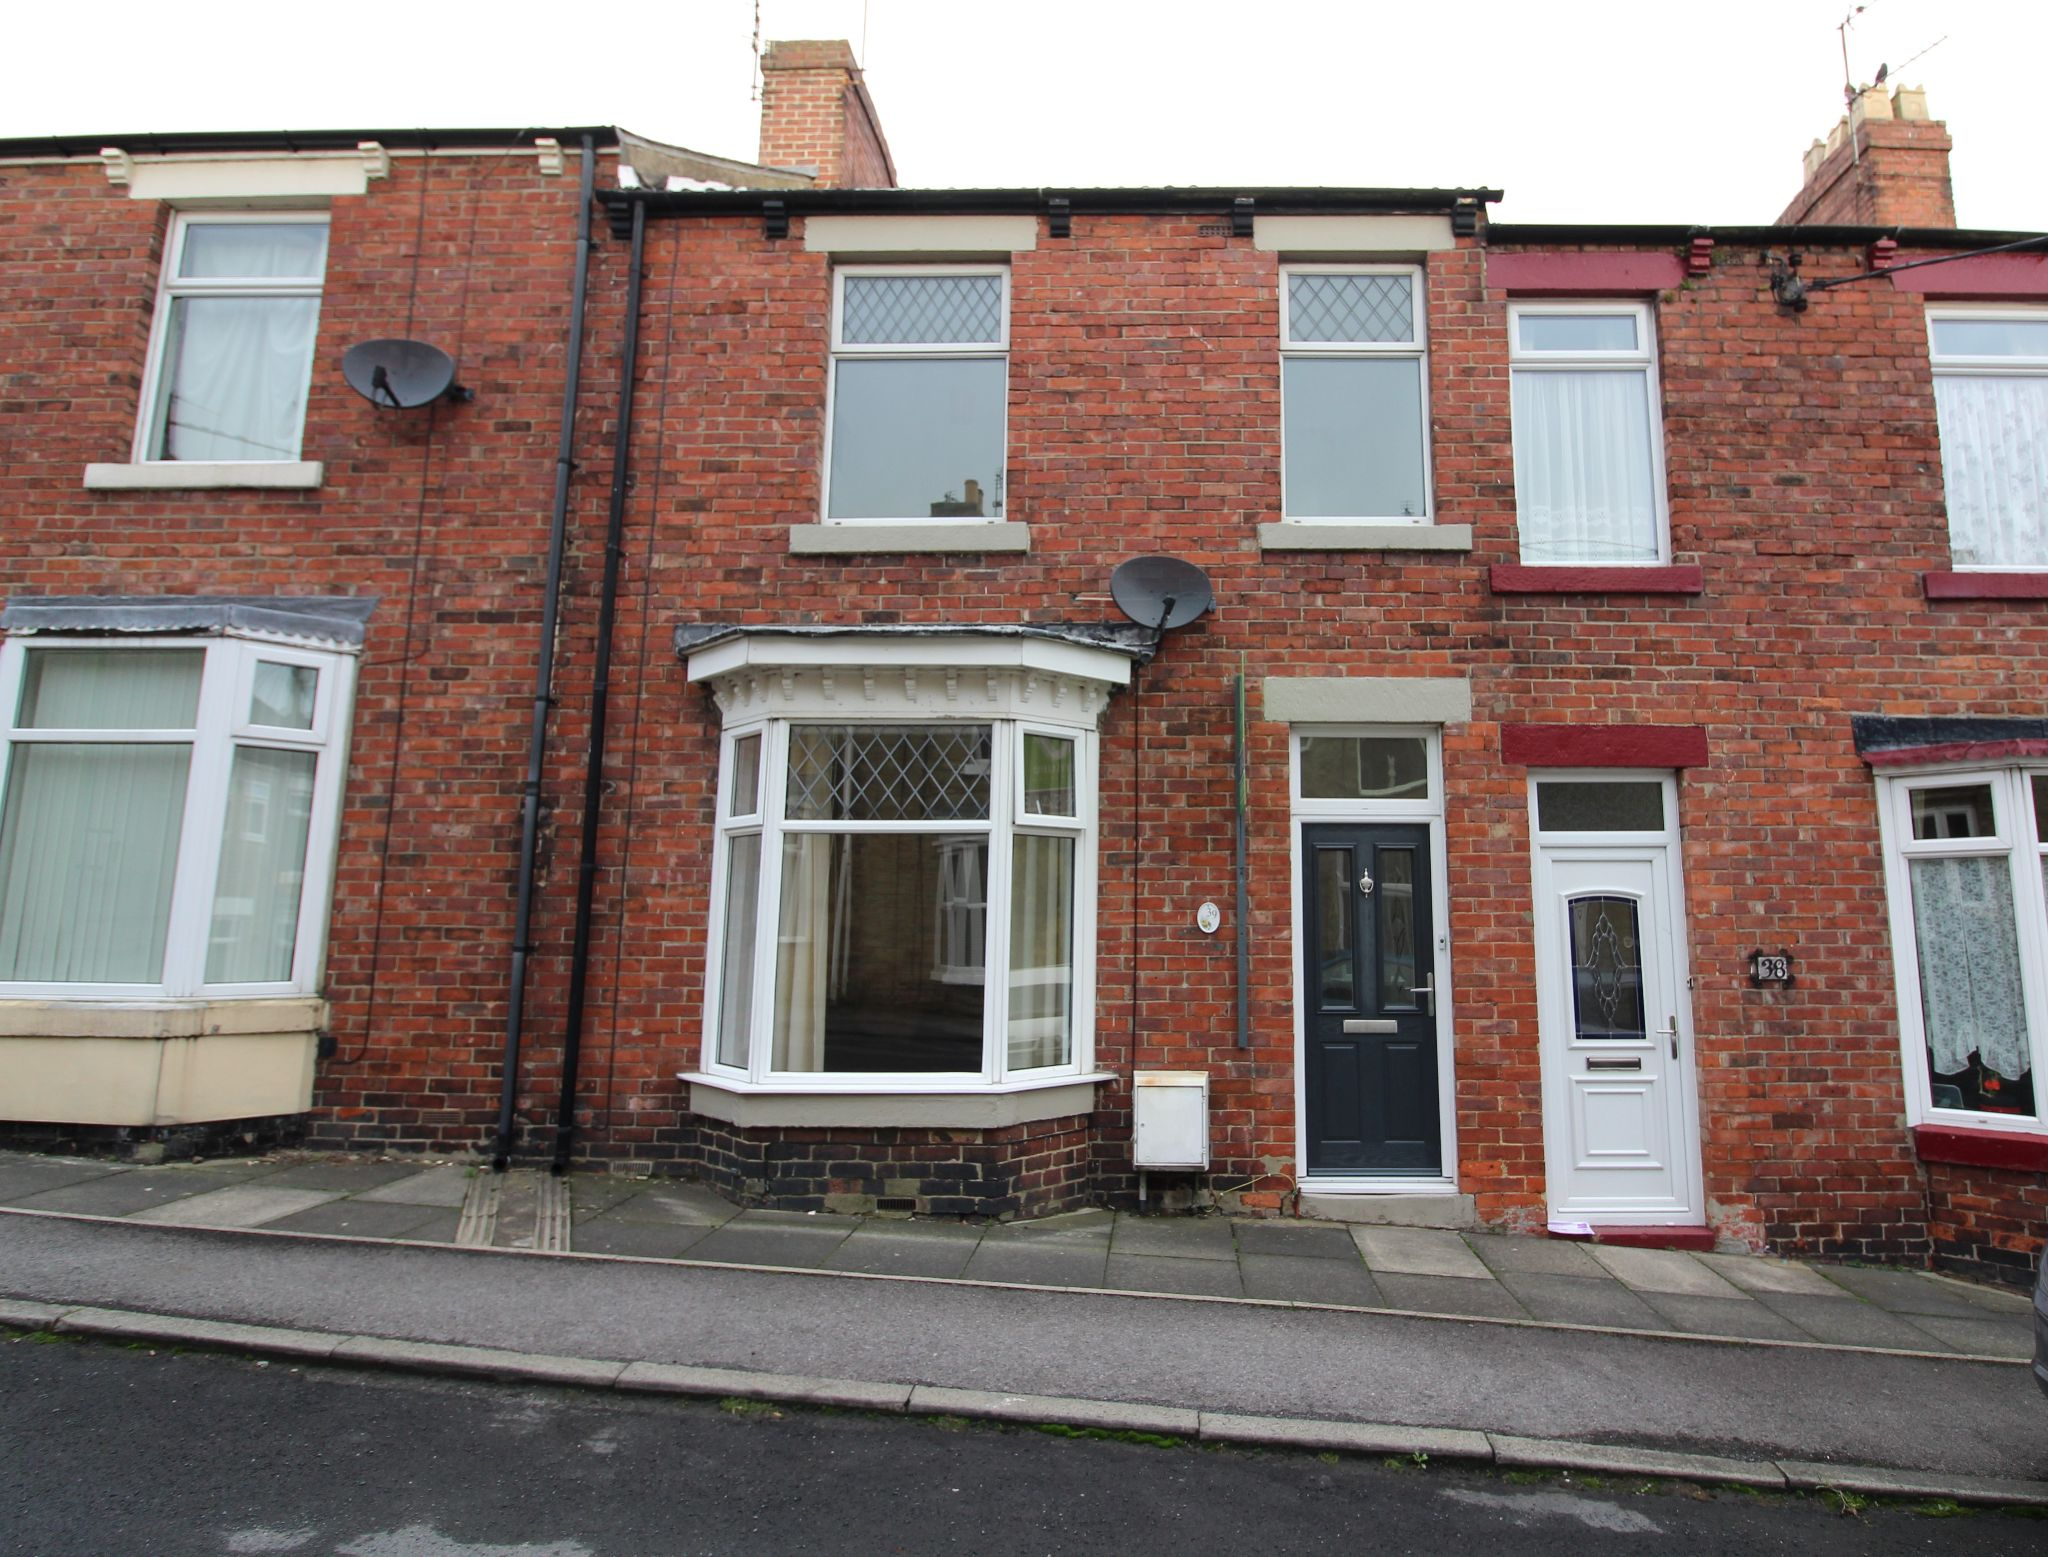 3 bedroom mid terraced house For Sale in Crook - Photograph 1.